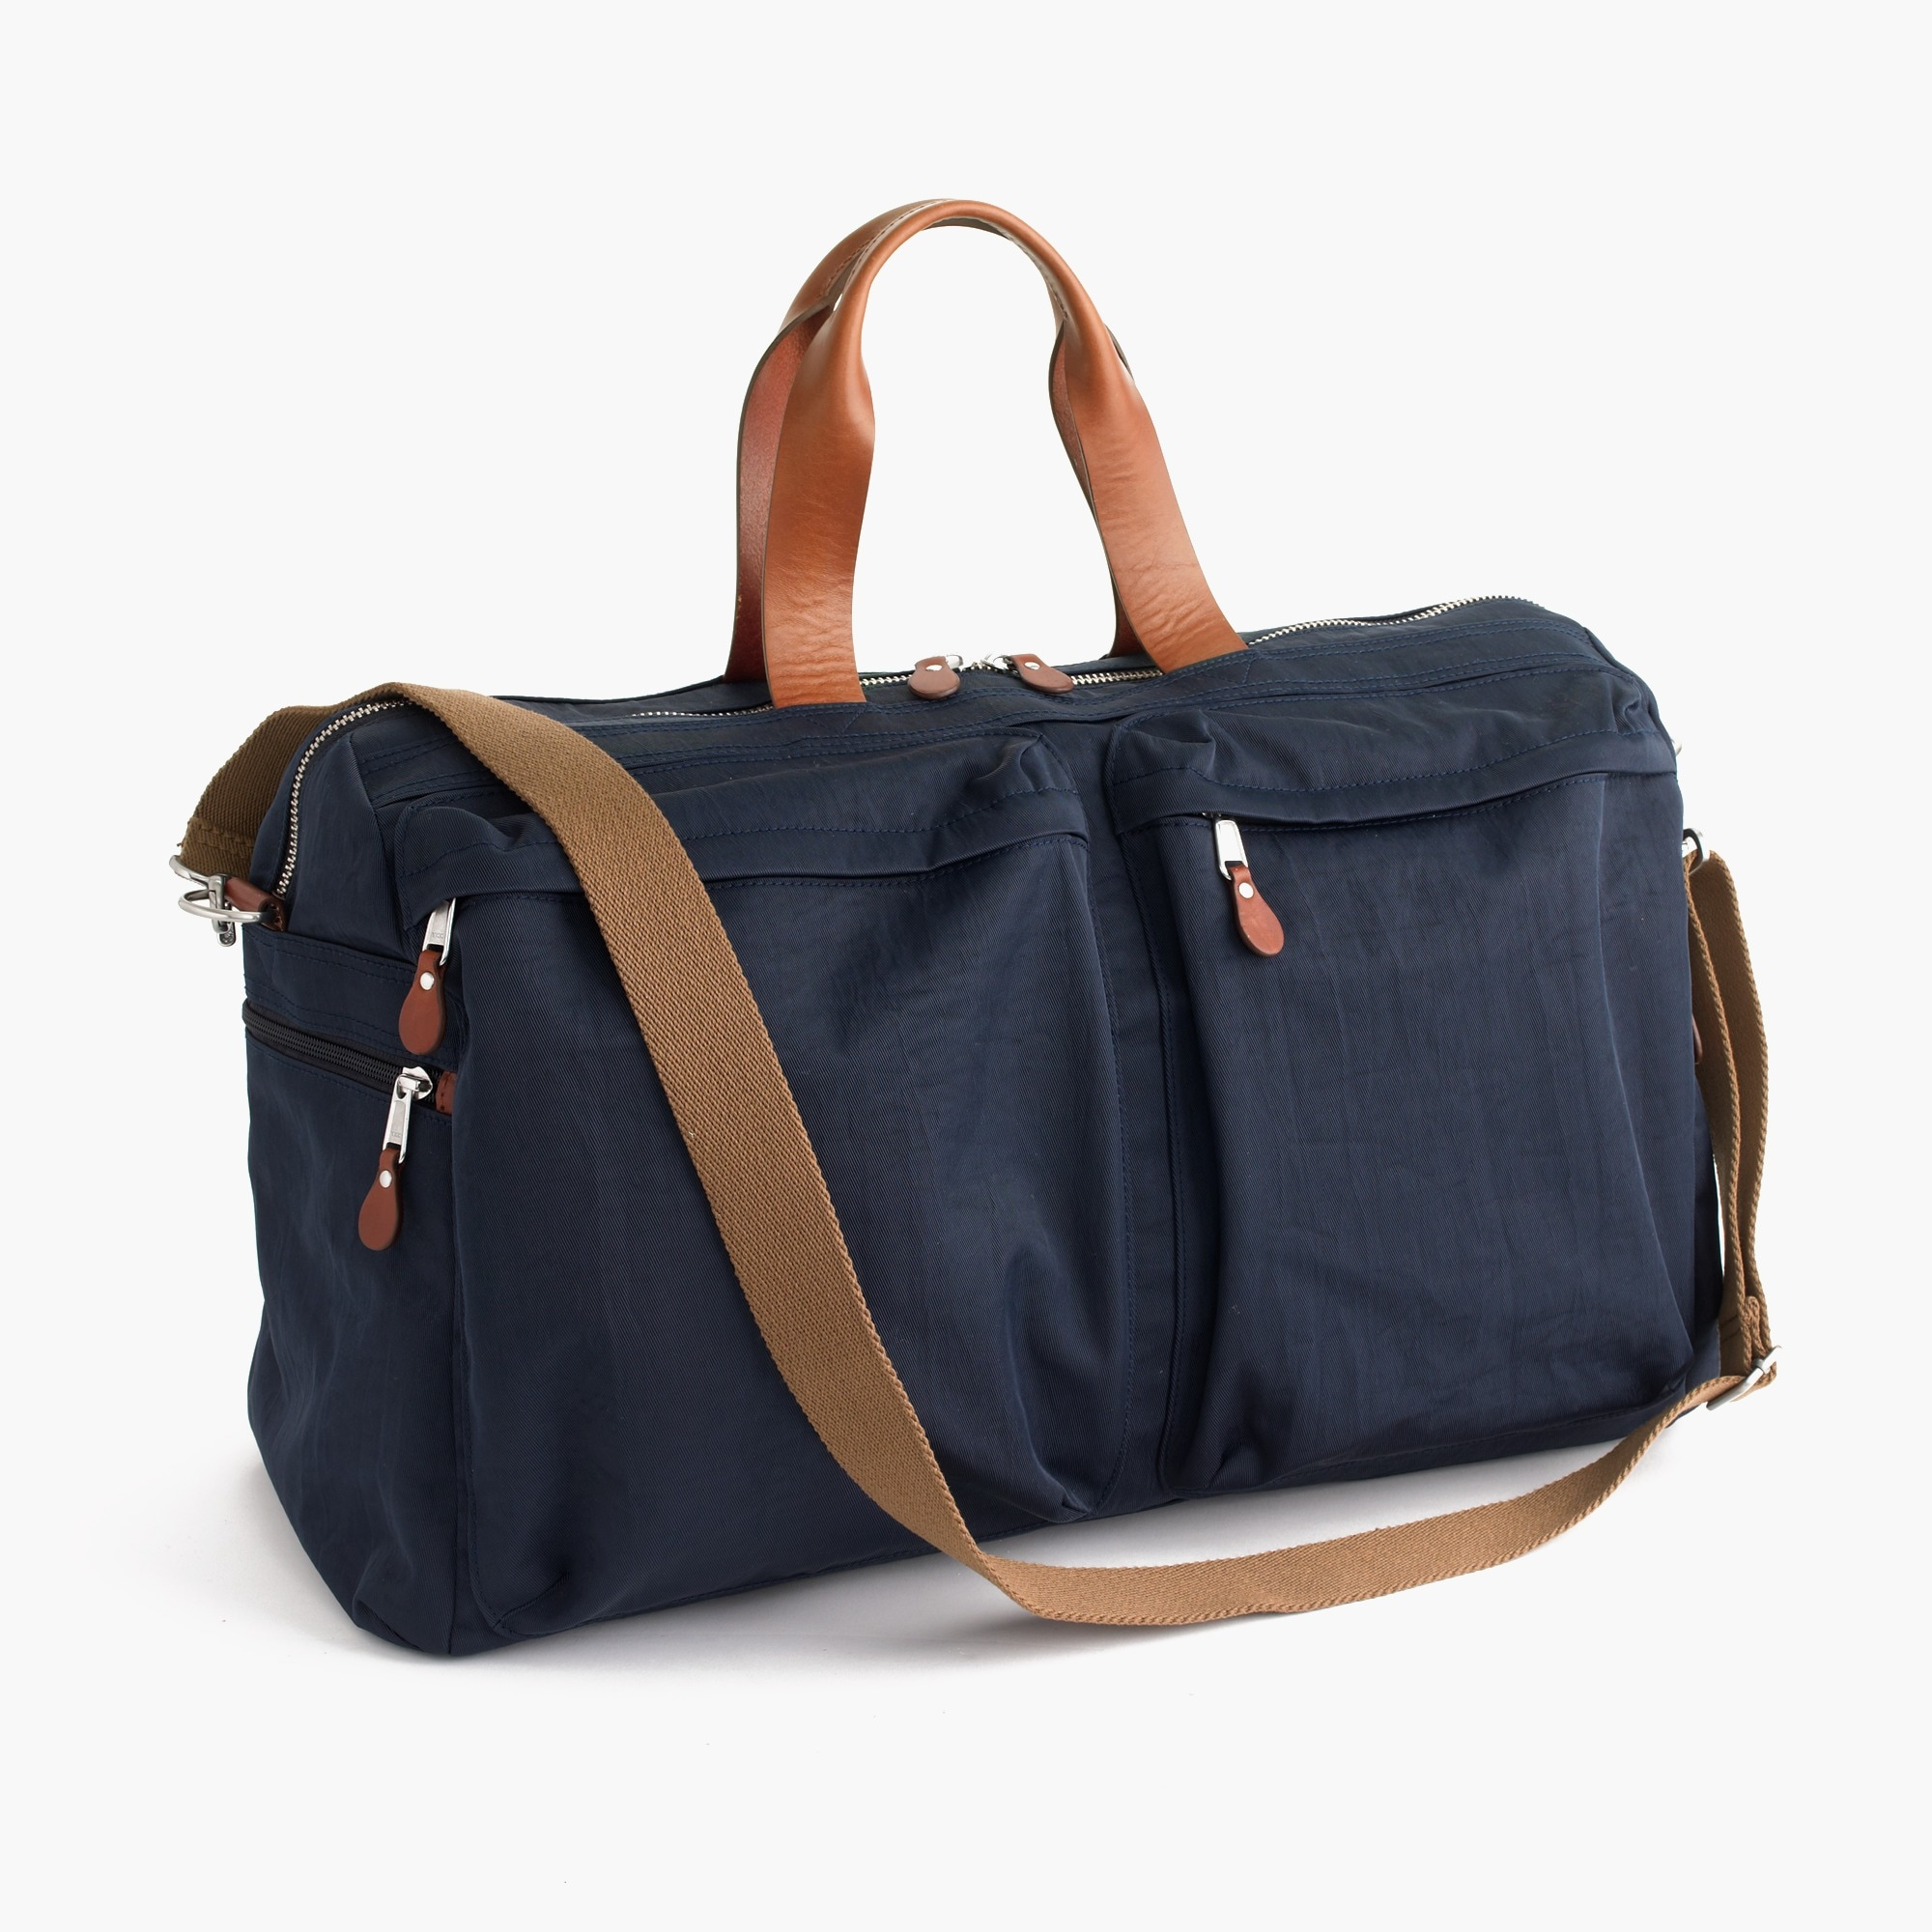 Image 1 for Harwick weekender bag